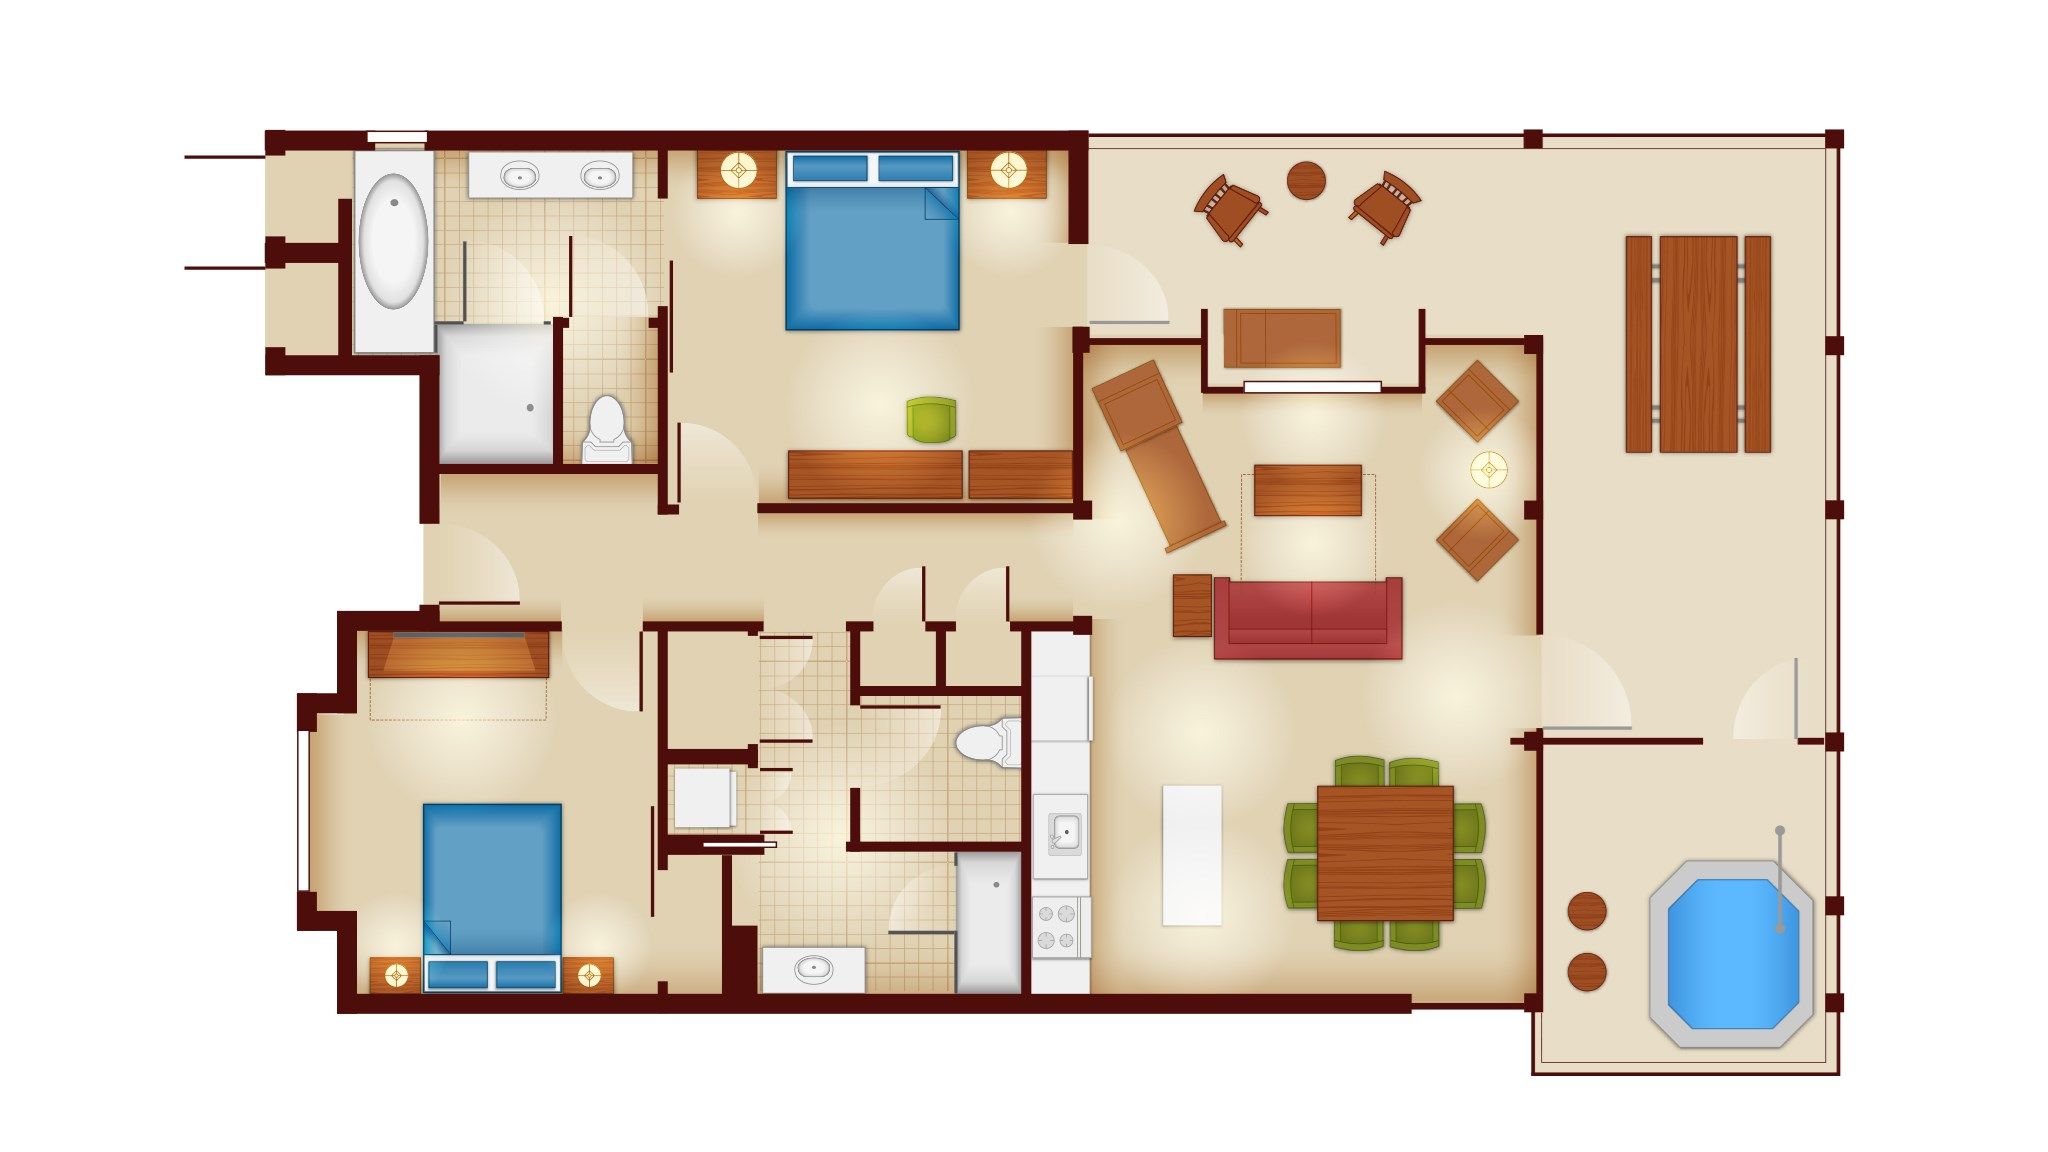 Photos Rooms And Floor Plans At Copper Creek Villas And